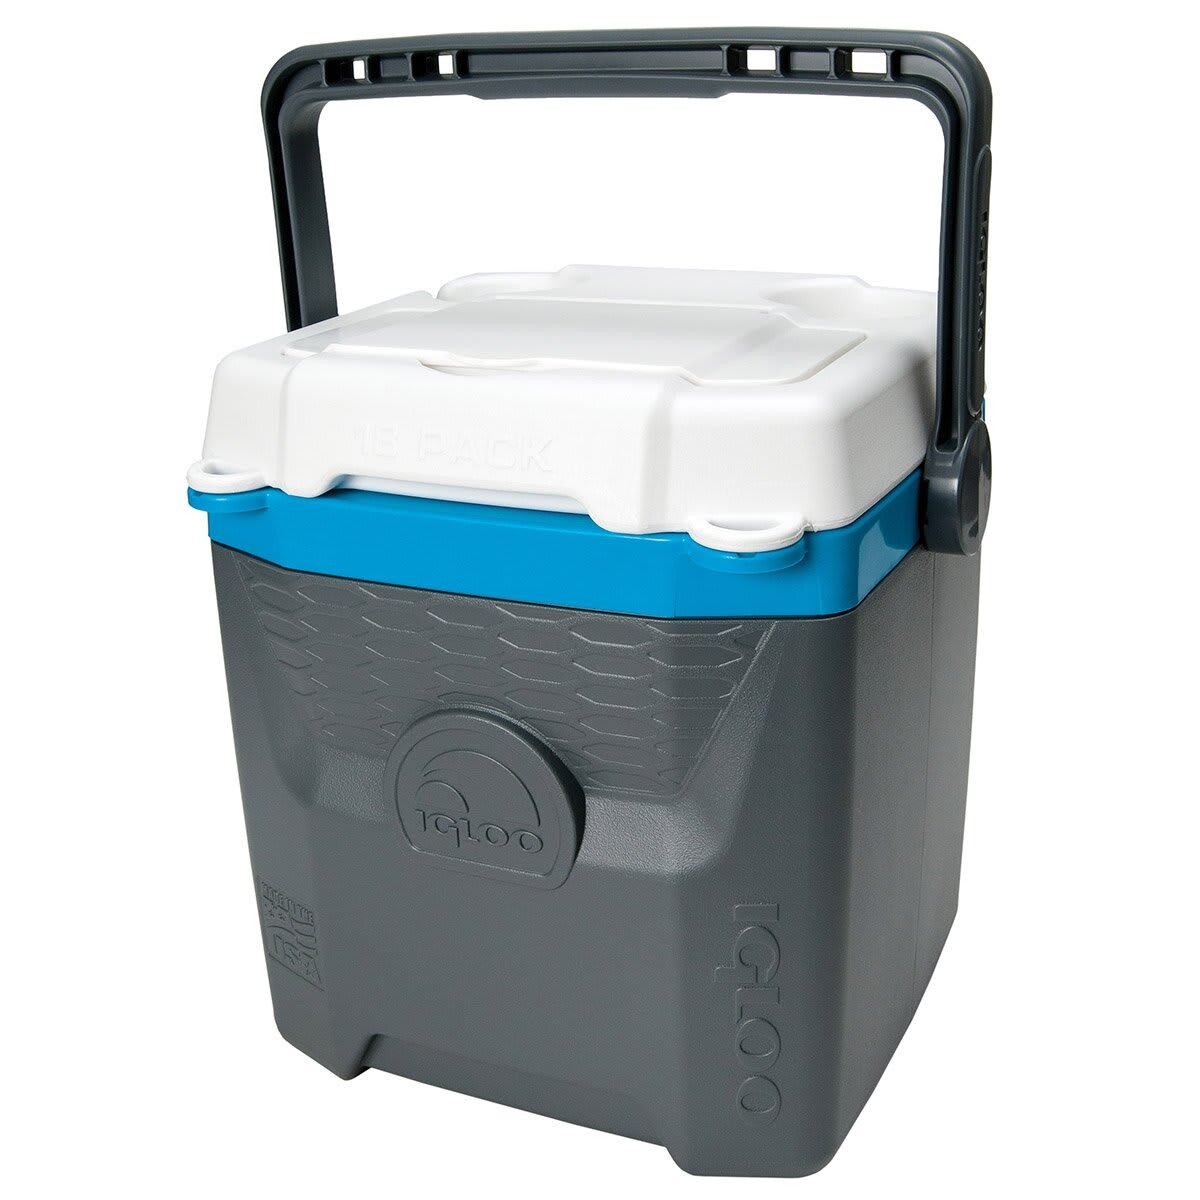 Igloo Quantum 12QT Cooler Box